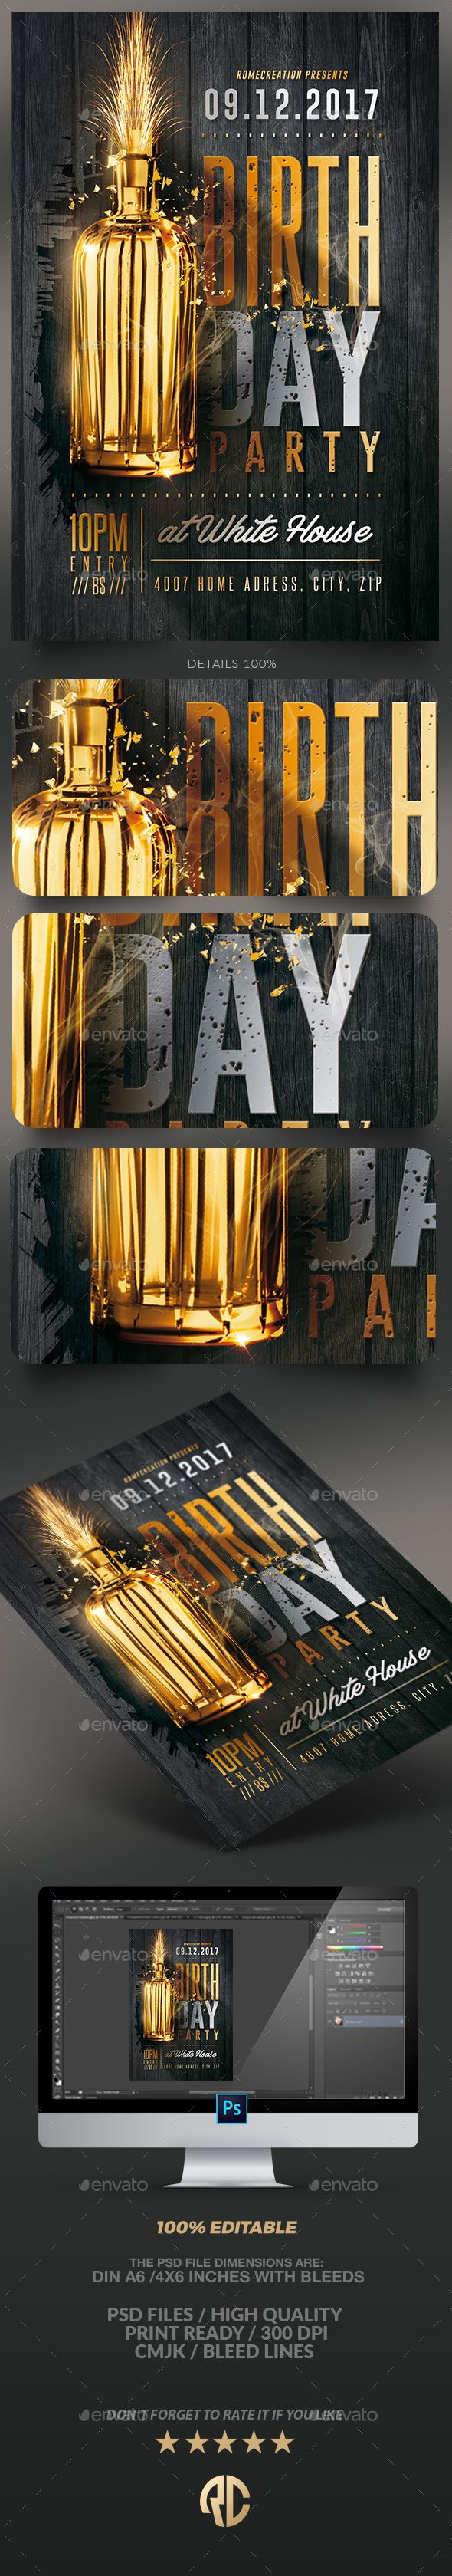 Gold Birthday Party | Flyer Template — PSD Template #party #flyer • Download ➝ https://graphicriver.net/item/gold-birthday-party-flyer-template/18405798?ref=pxcr